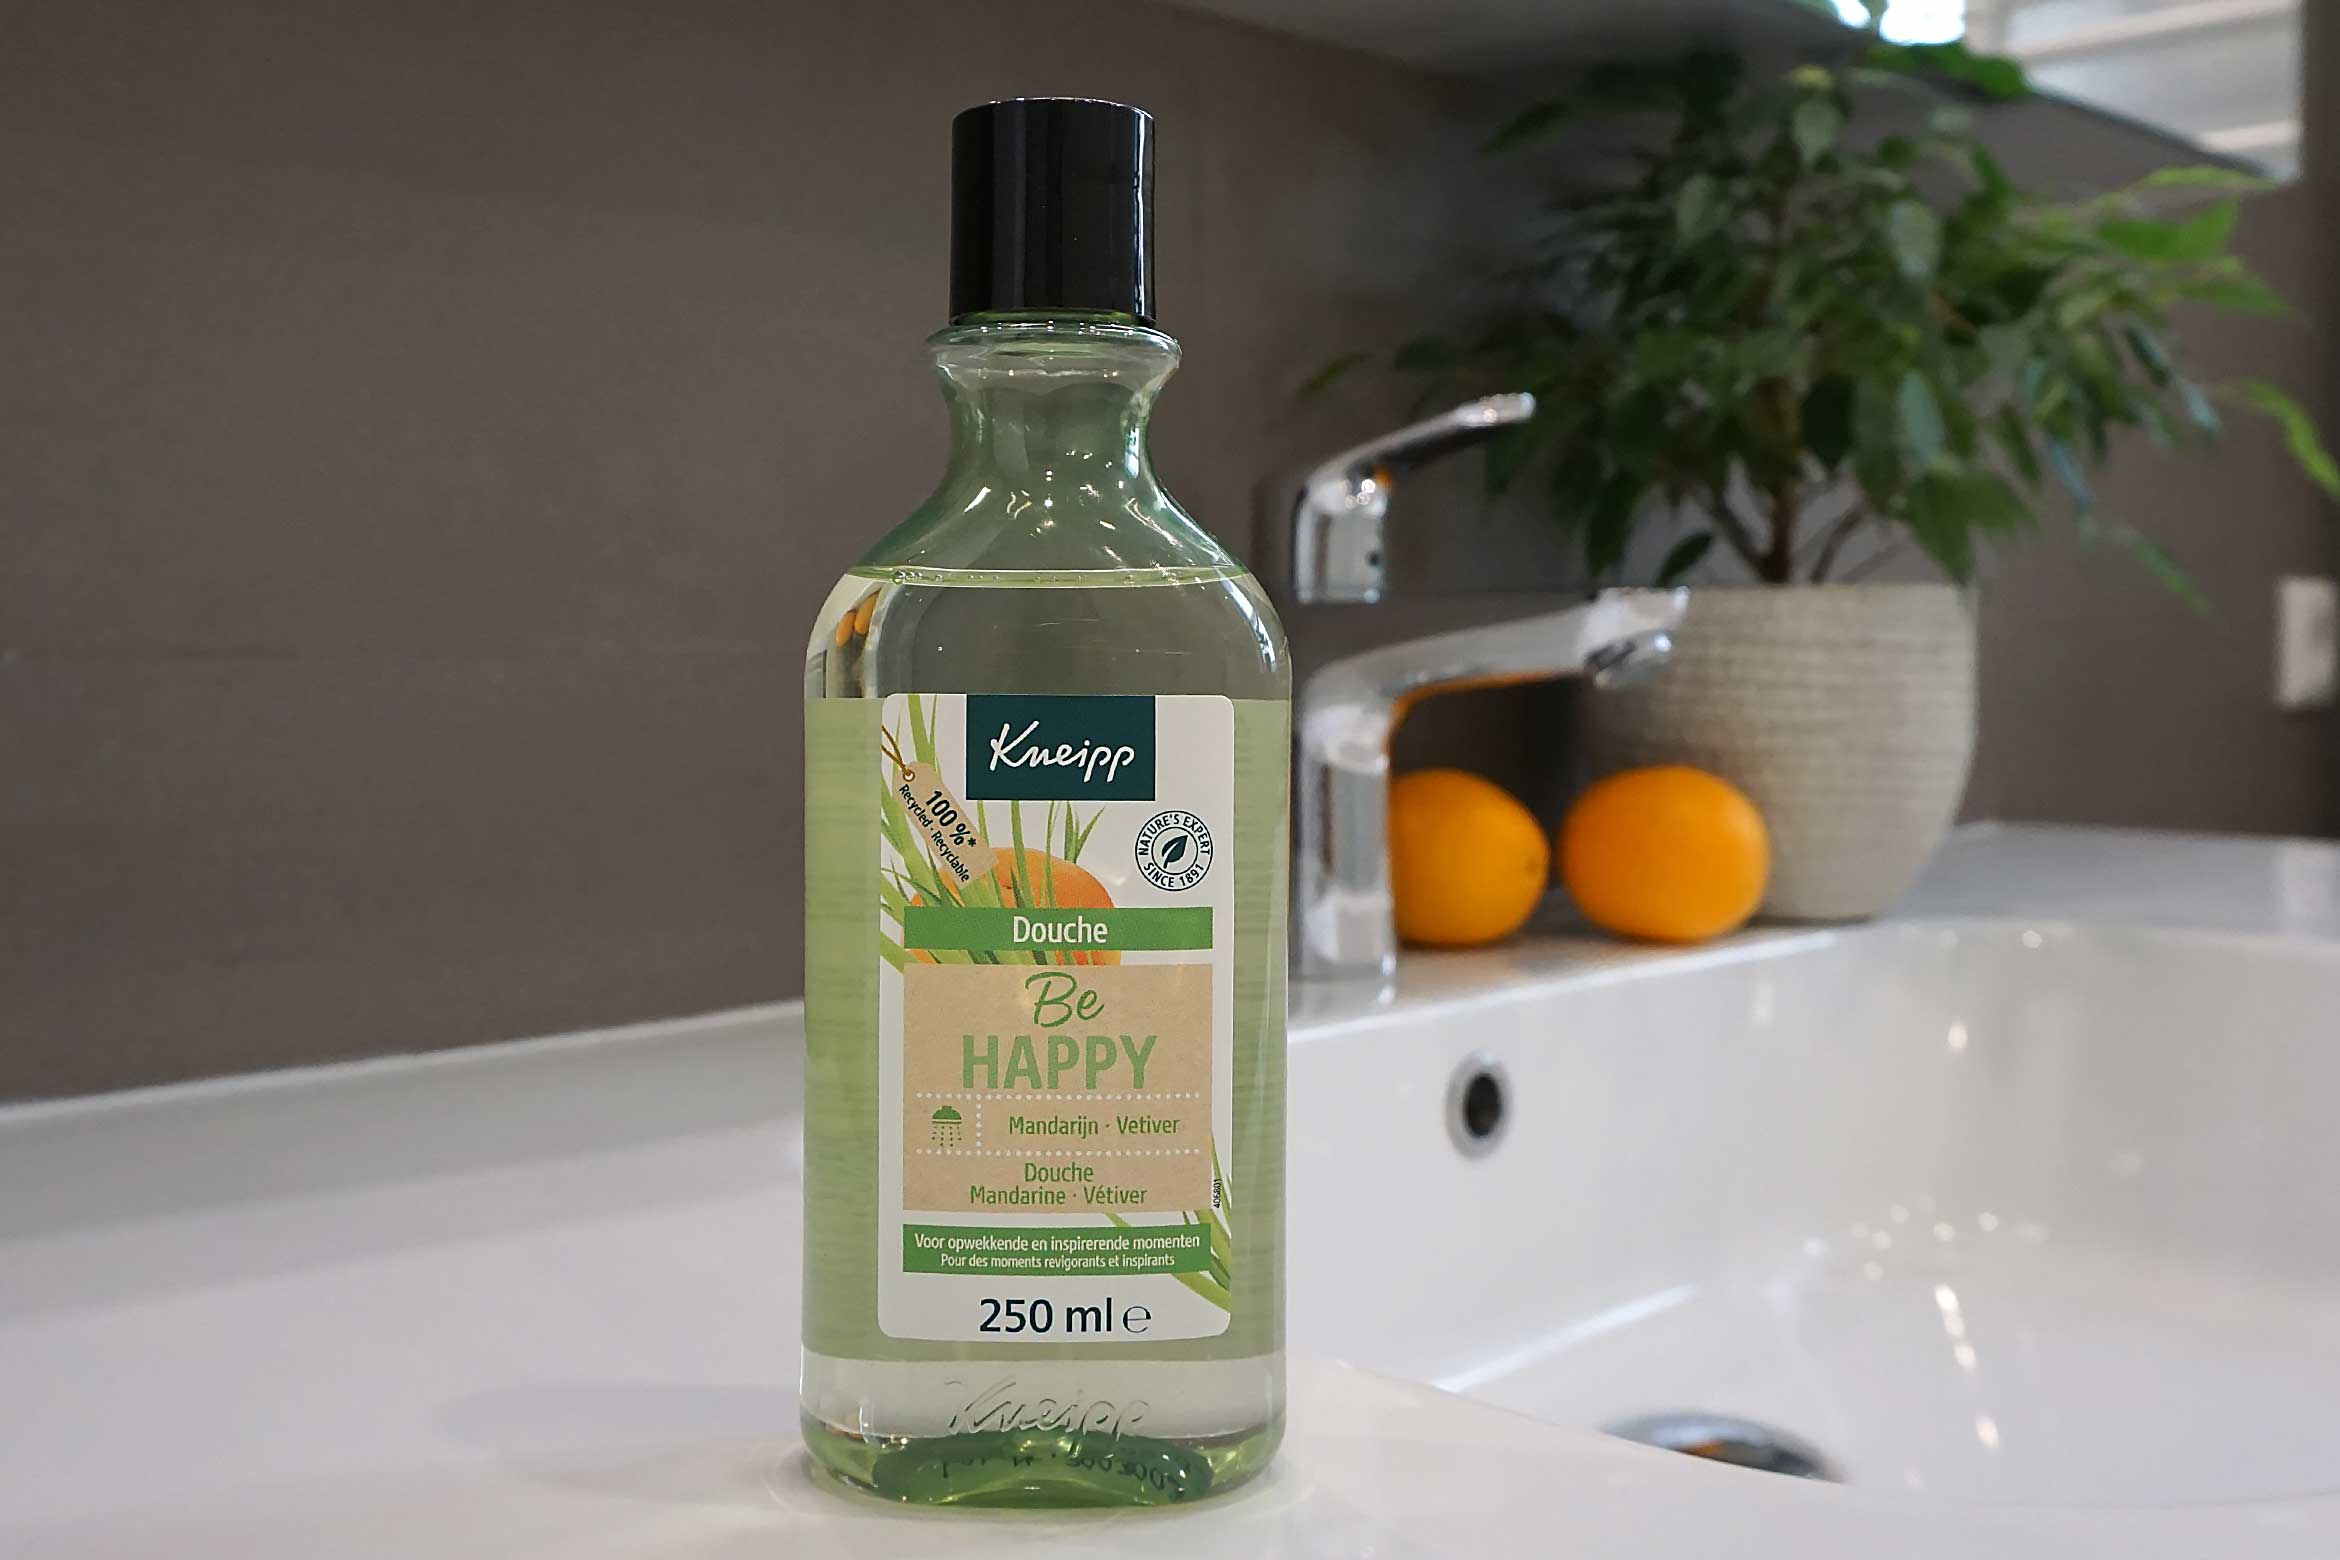 kneipp be happy douche review